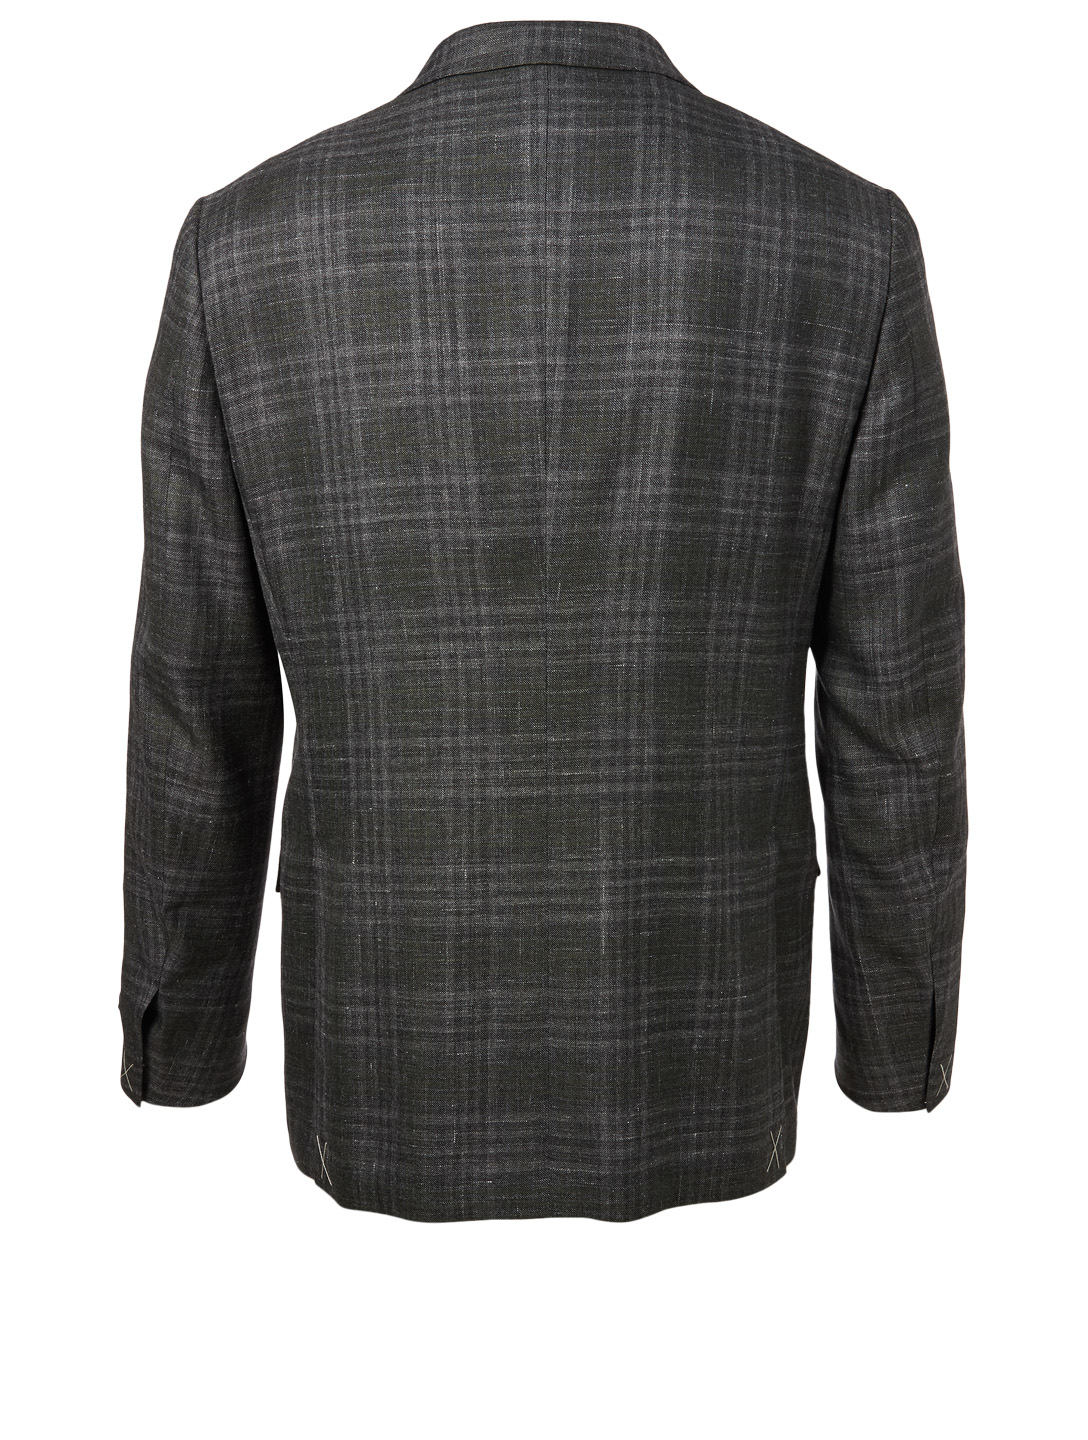 ERMENEGILDO ZEGNA Jacket In Check Men's Grey